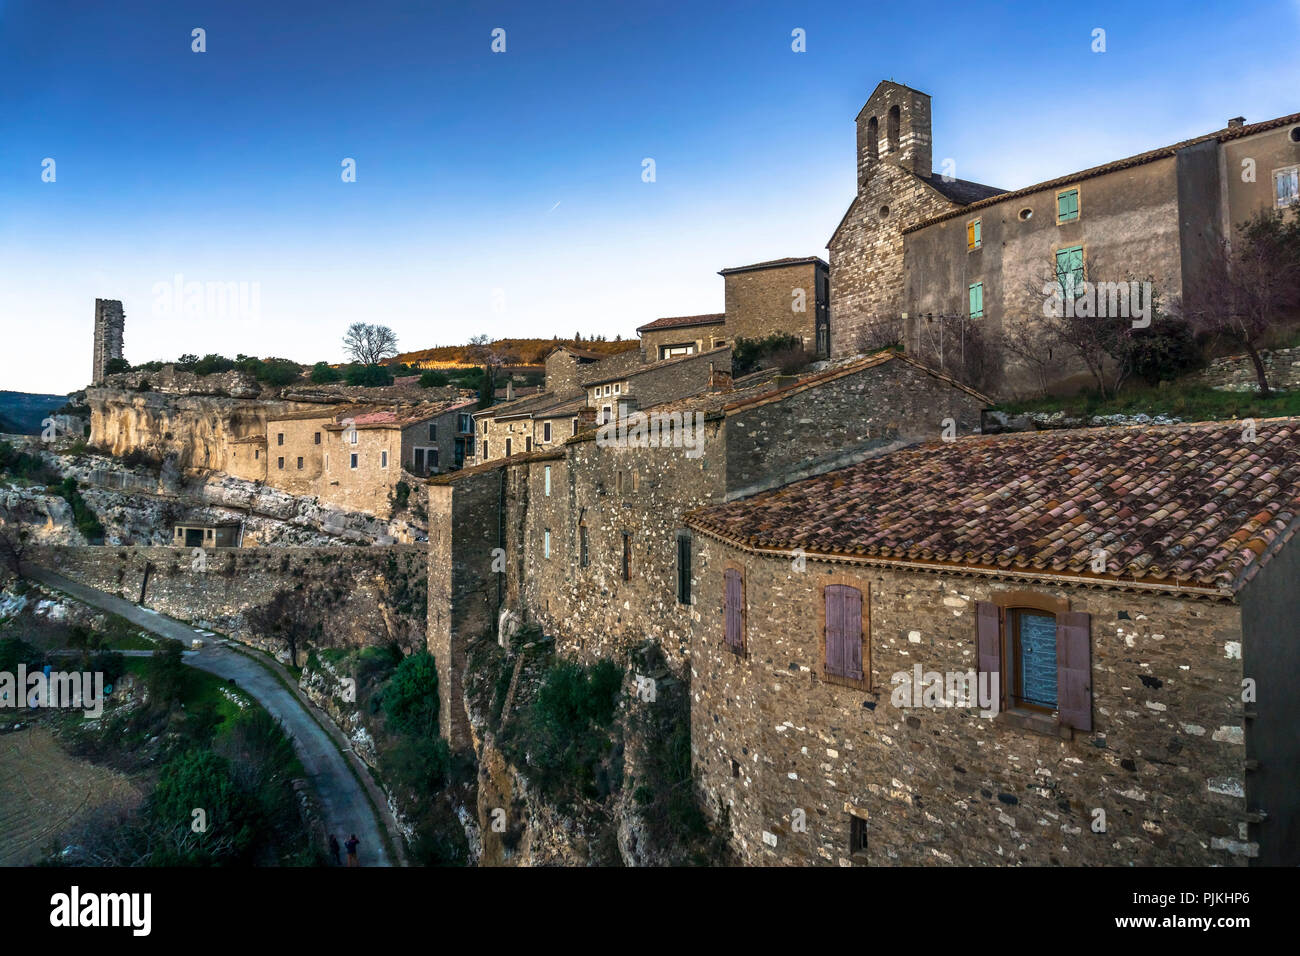 View of the Romanesque church of Saint-Étienne, La Candela, remains of the tower of the old castle and the village, the last refuge of the Cathars - Stock Image